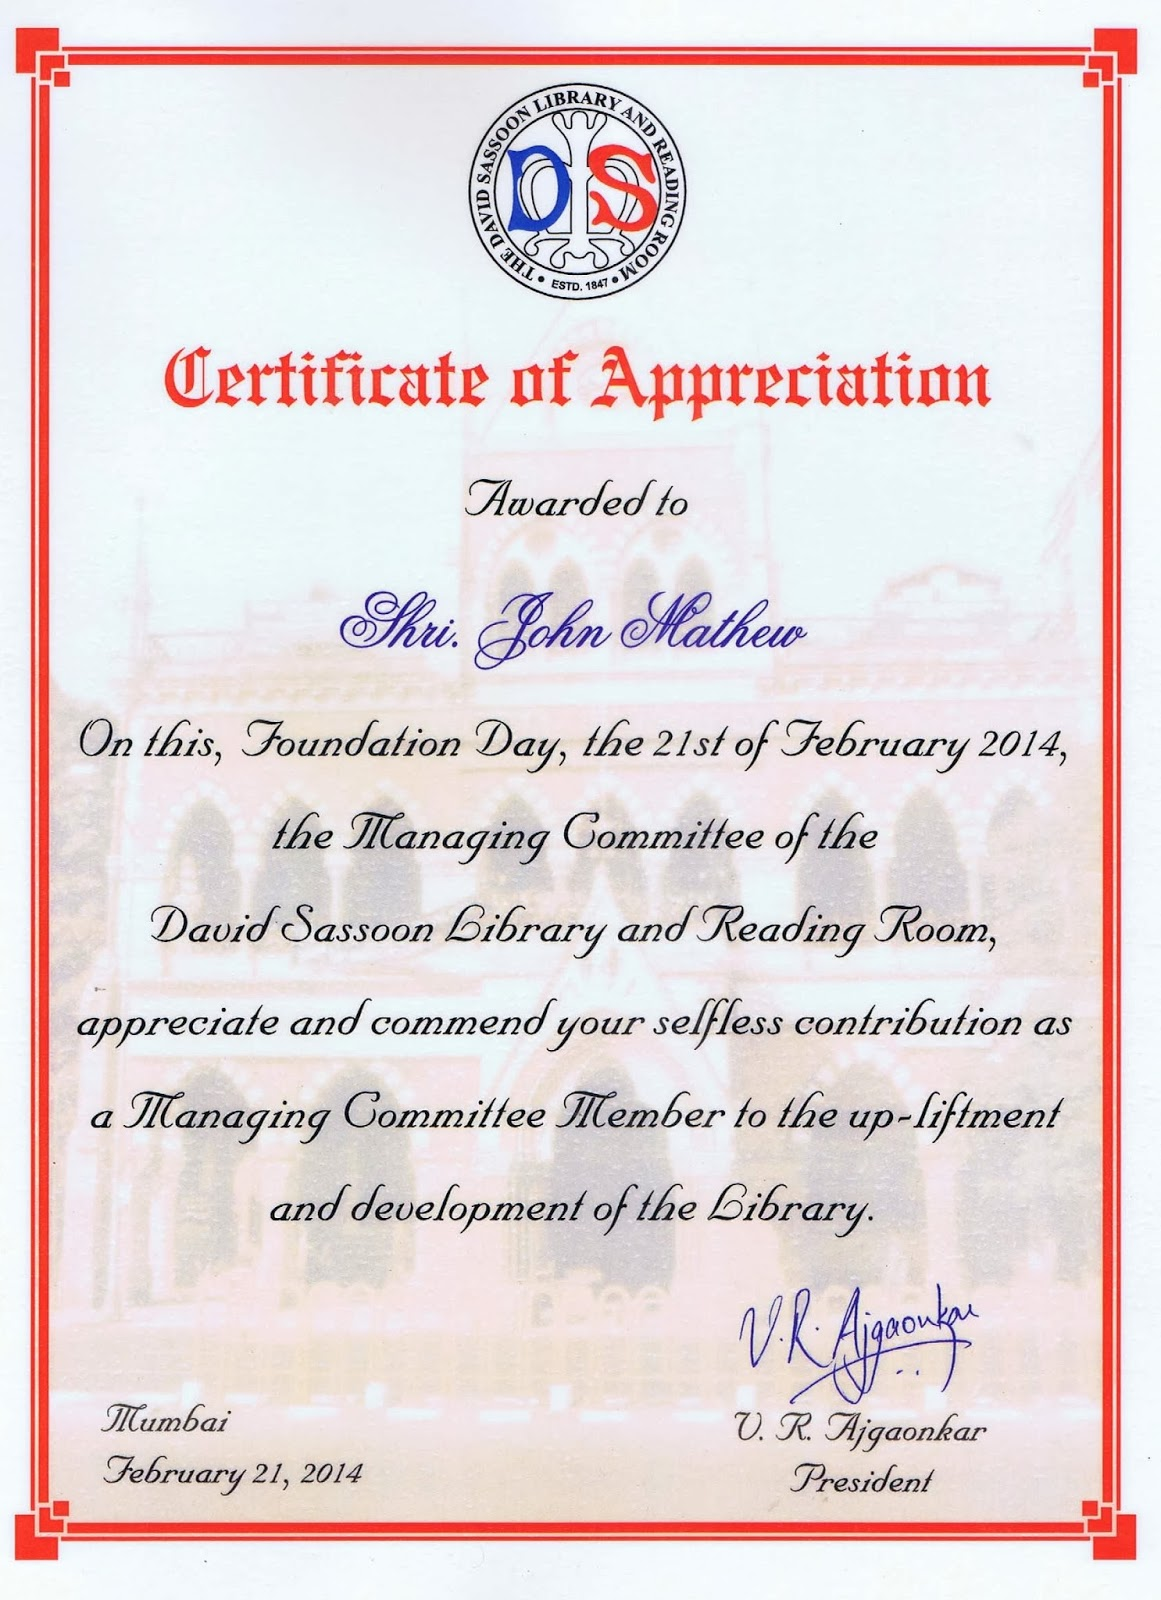 John P Matthew On Writing Book Reviews And The Writing Life DSL CERTIFICATE  Honoured To Be Felicitated By Davidhtml Army Certificate Of Appreciation  Army Certificate Of Appreciation Template